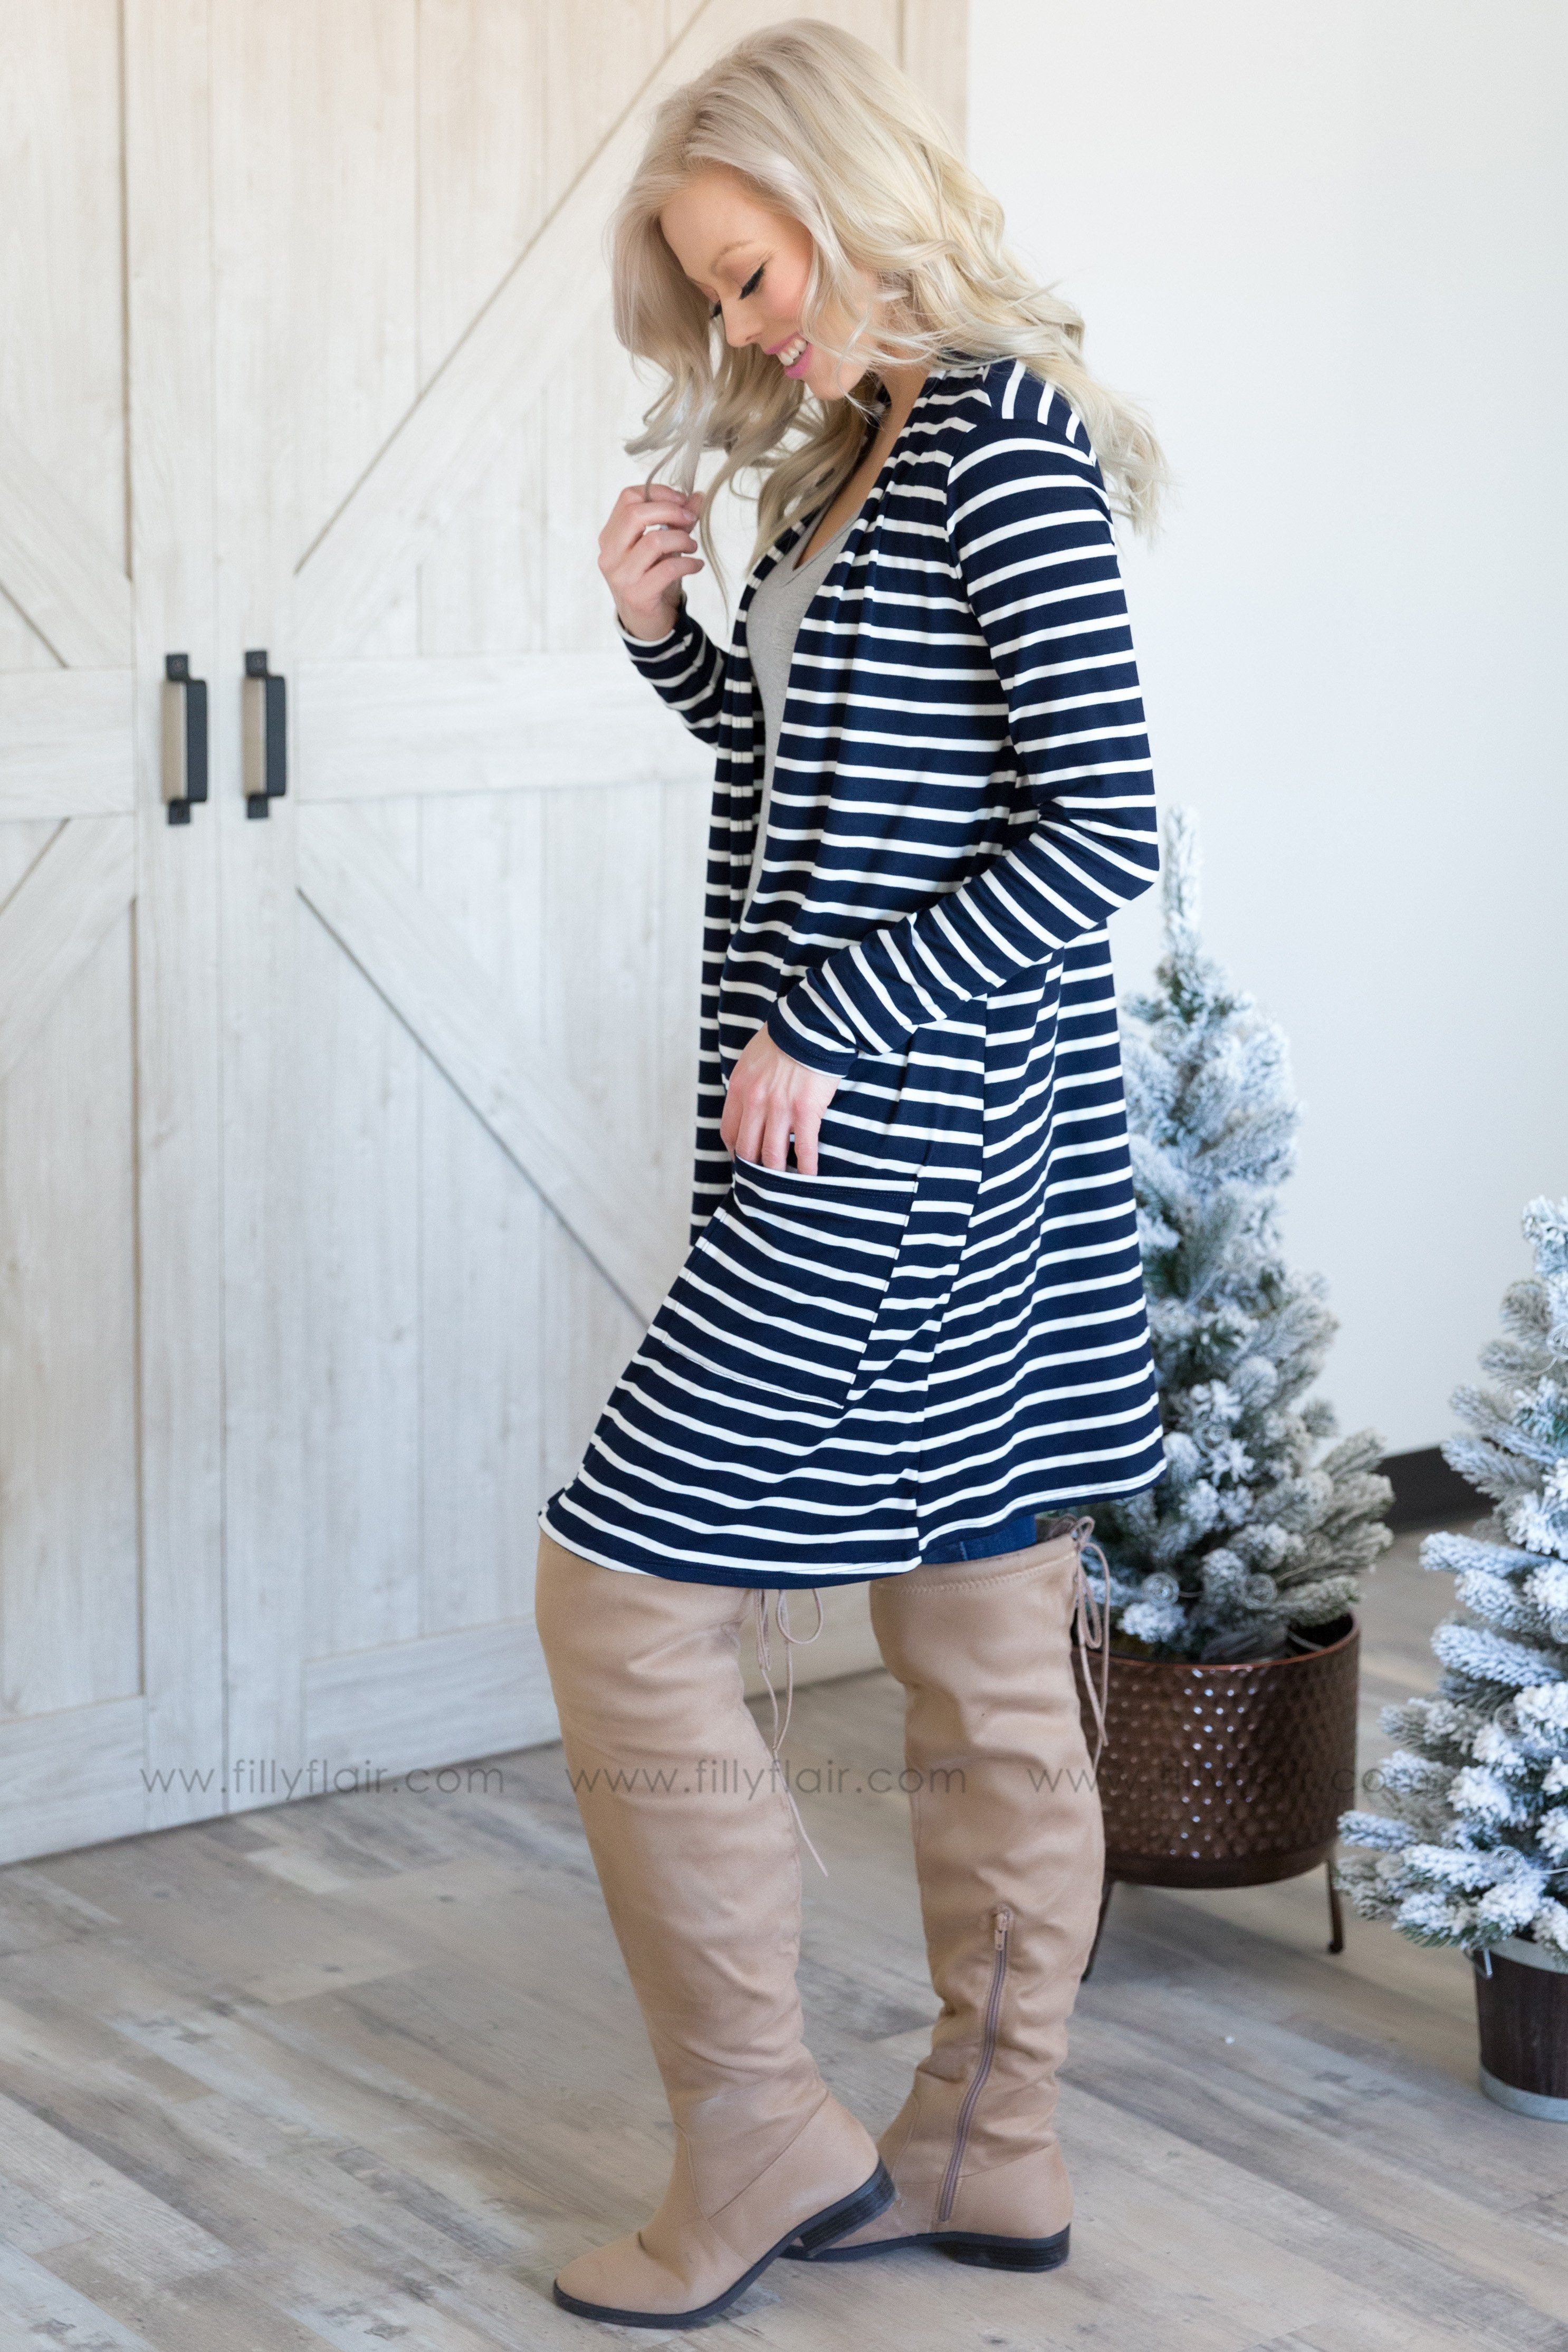 Baby Do I Long Sleeve White Striped Open Pocket Cardigan in Navy - Filly Flair